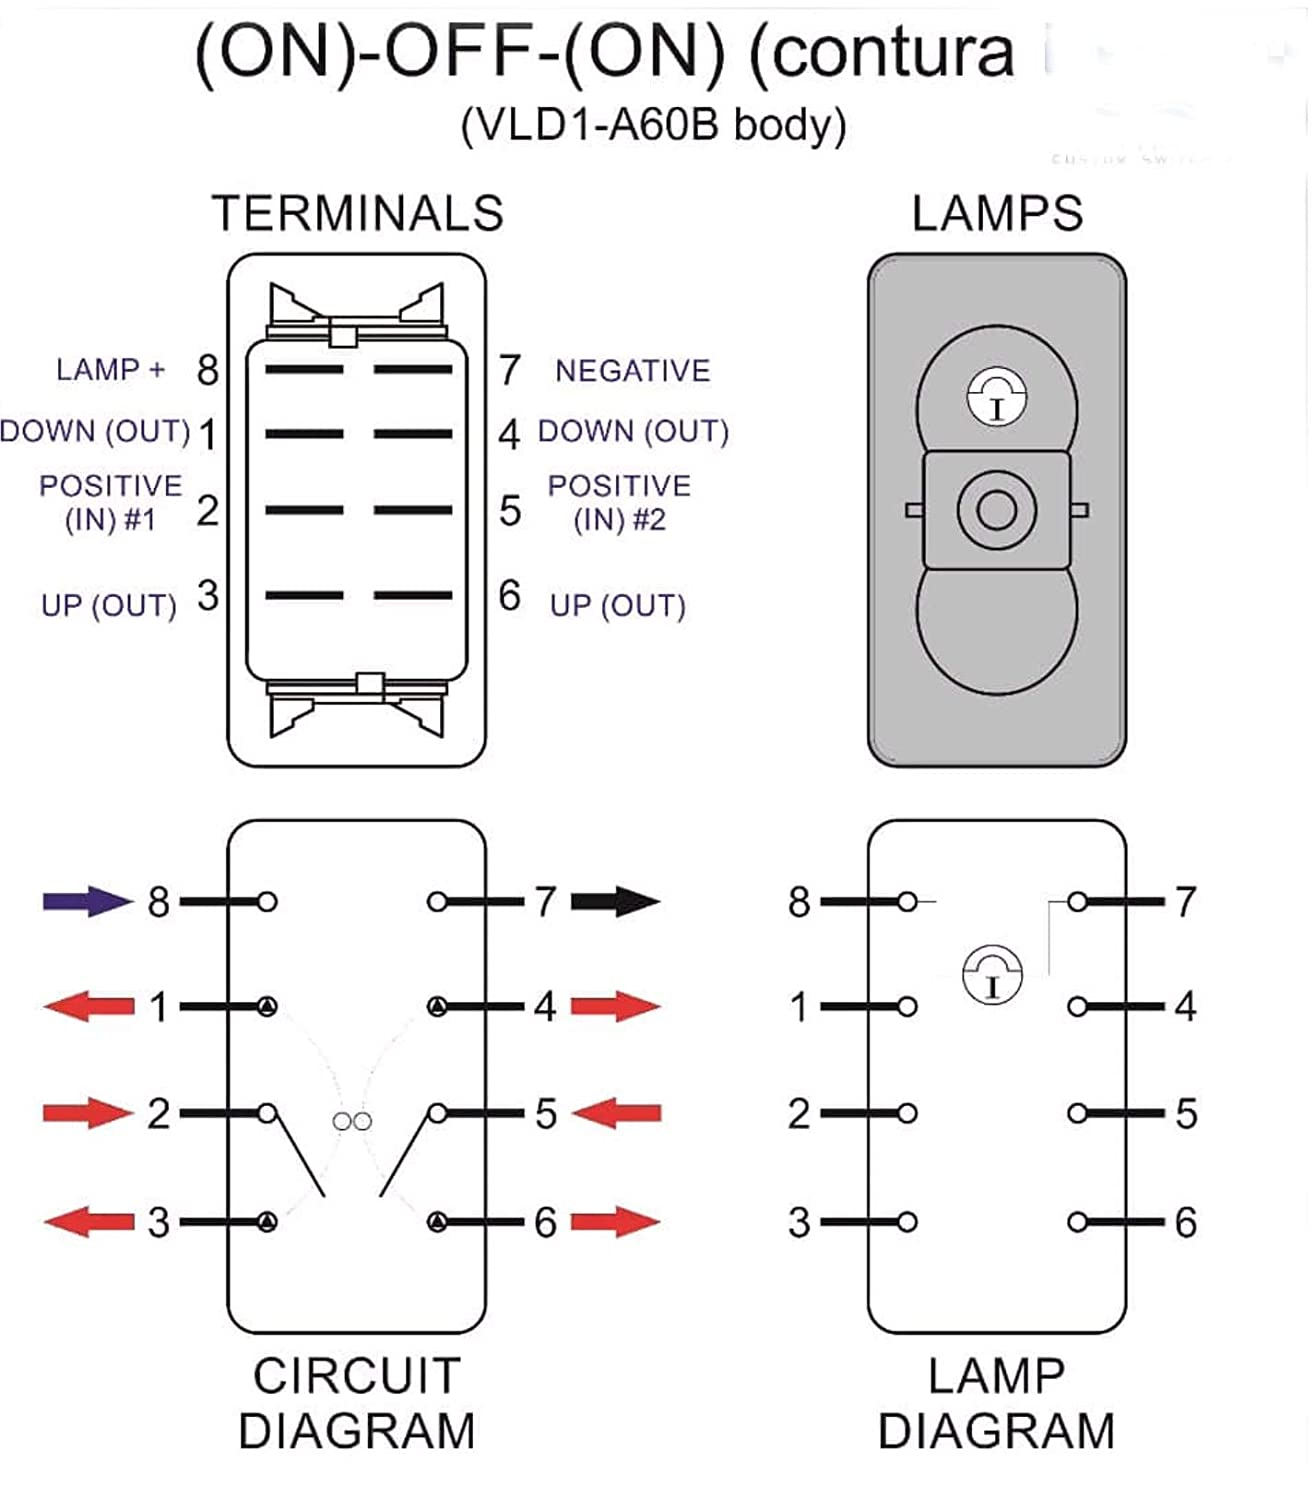 hh dpdt wiring diagram best wiring library Daystar Switch Wiring Diagram amazon com rocker switches dp on off on 20a 12v sealed non ill rh amazon com hh dpdt wiring diagram